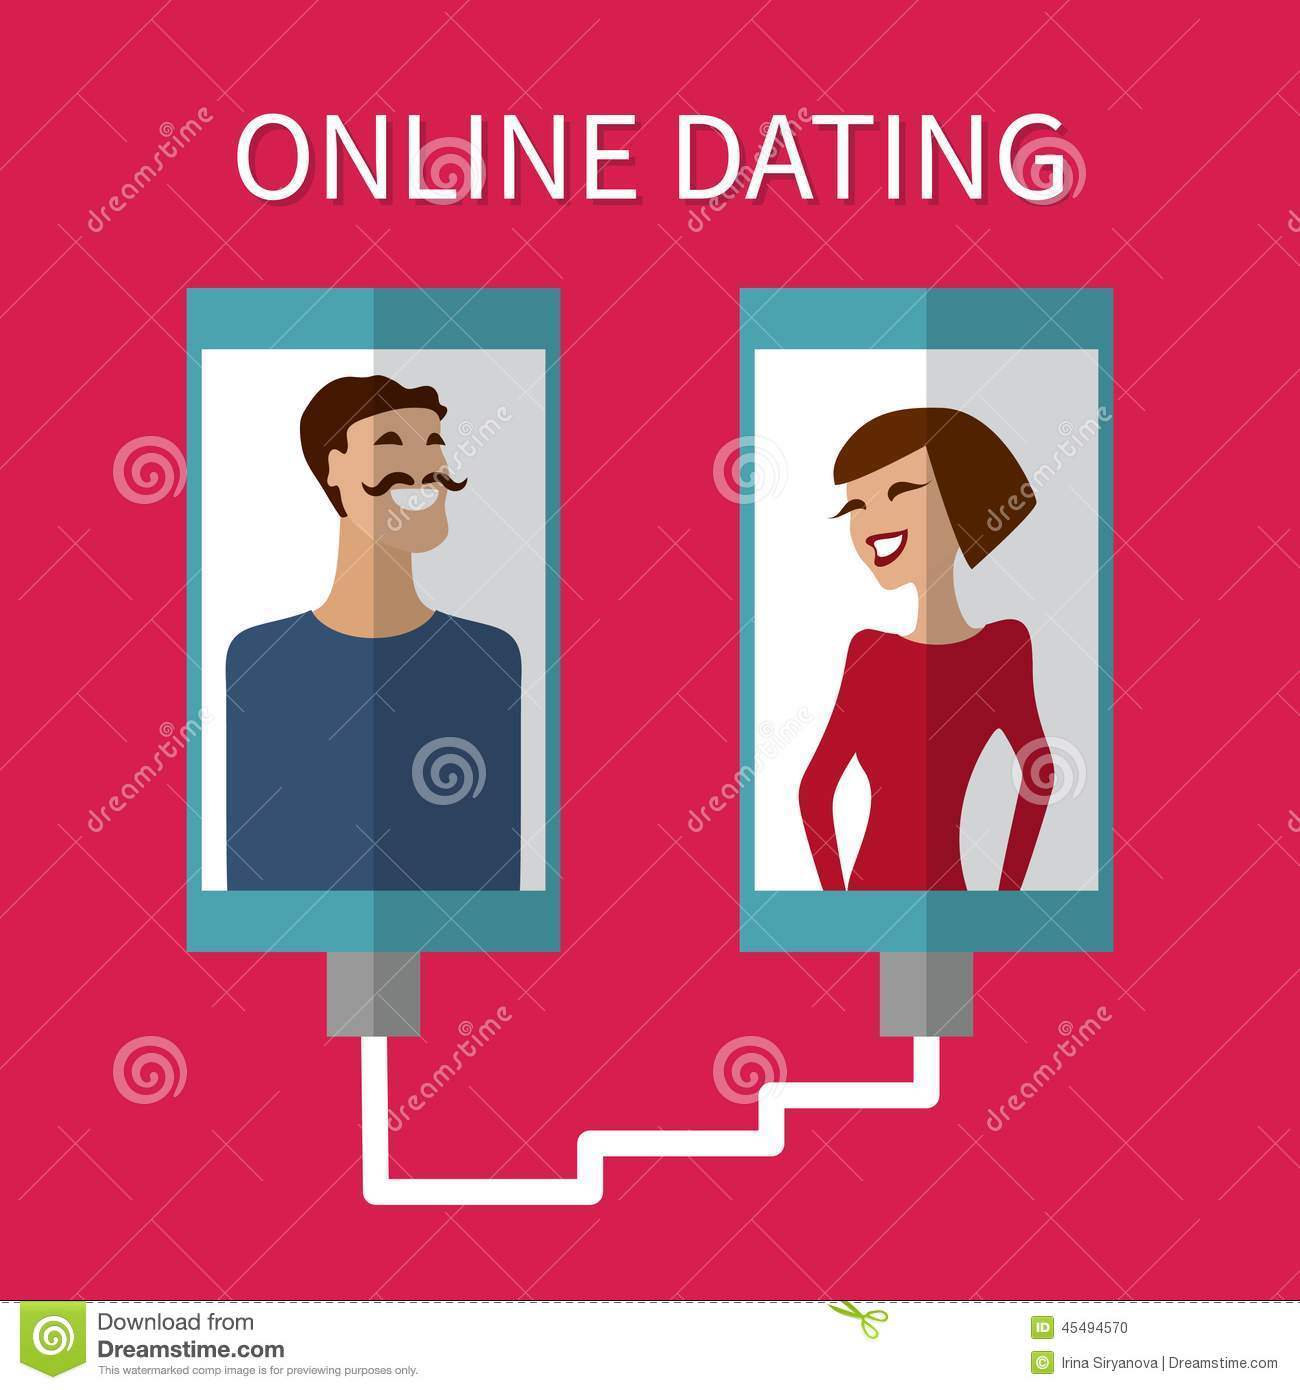 dalhart online hookup & dating Compare the best online dating sites & services using expert ratings and consumer reviews in the official consumeraffairs buyers guide.